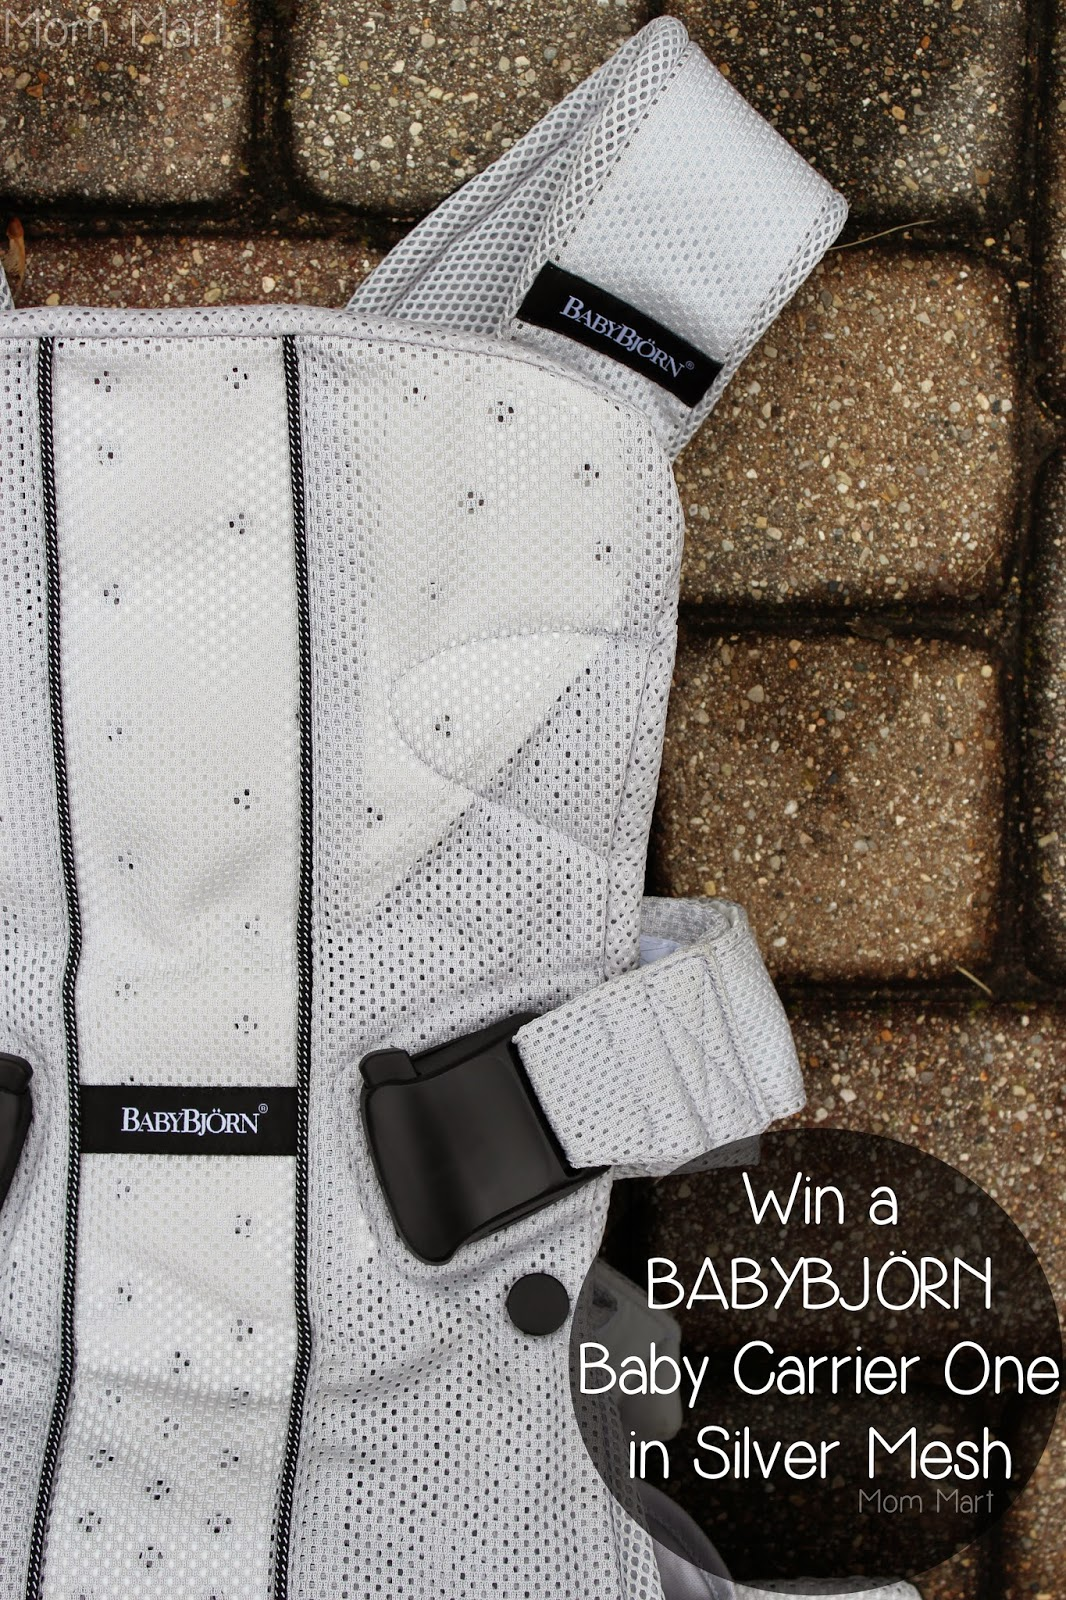 Enter to #Win a BABYBJÖRN Baby Carrier One in Silver Mesh #BabyWearing #BabyCarrierOne #OneIsAllYouNeed #Giveaway